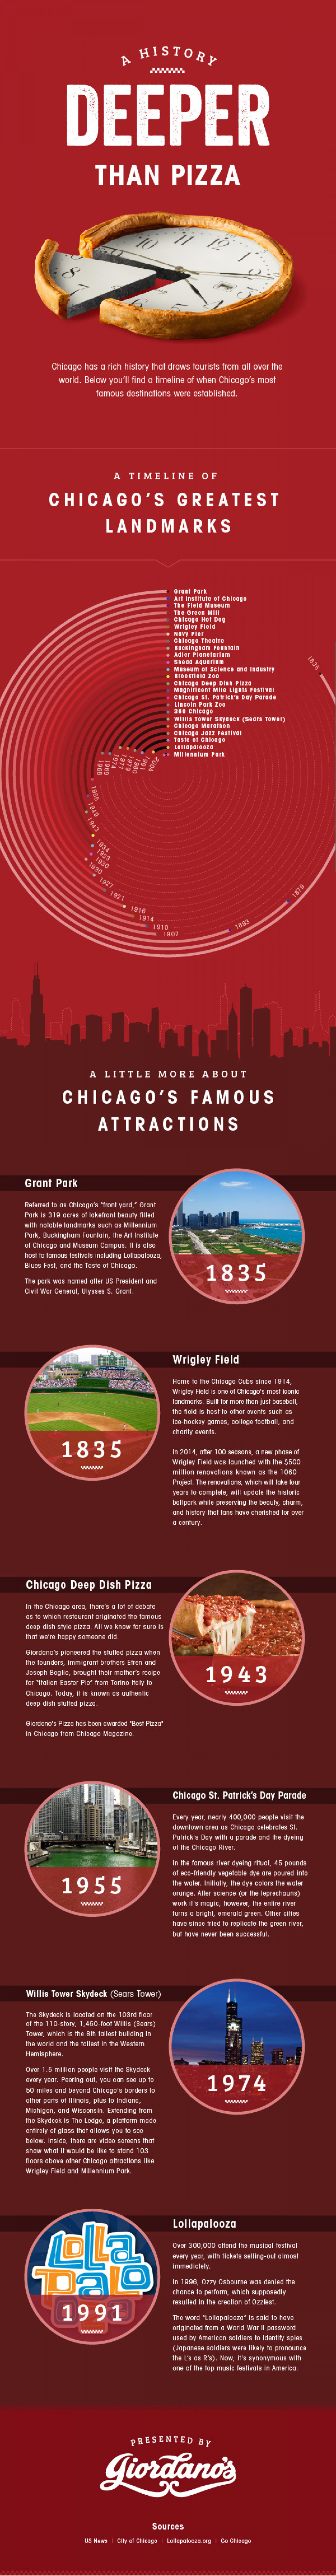 A History Deeper than Pizza: Chicago's  Greatest Attractions Infographic